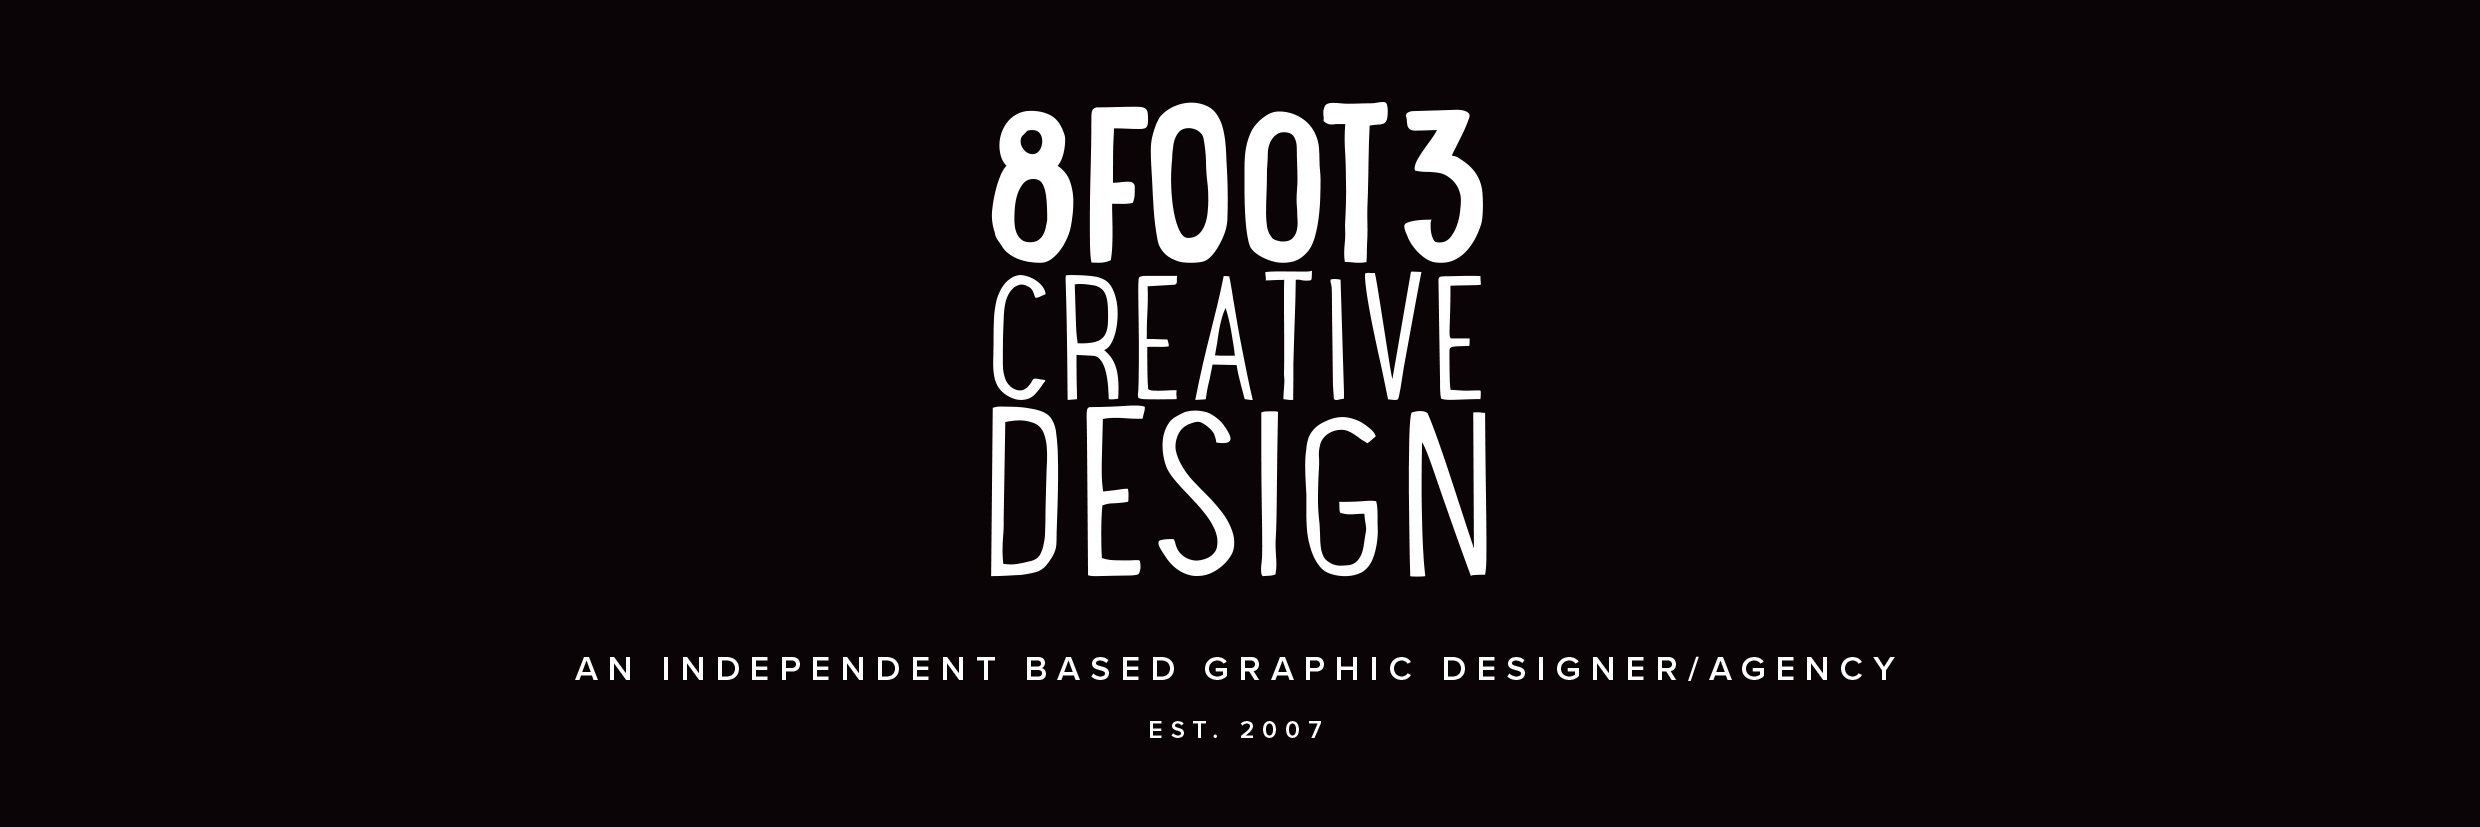 ABOUT Graphic 8FOOT3.jpg